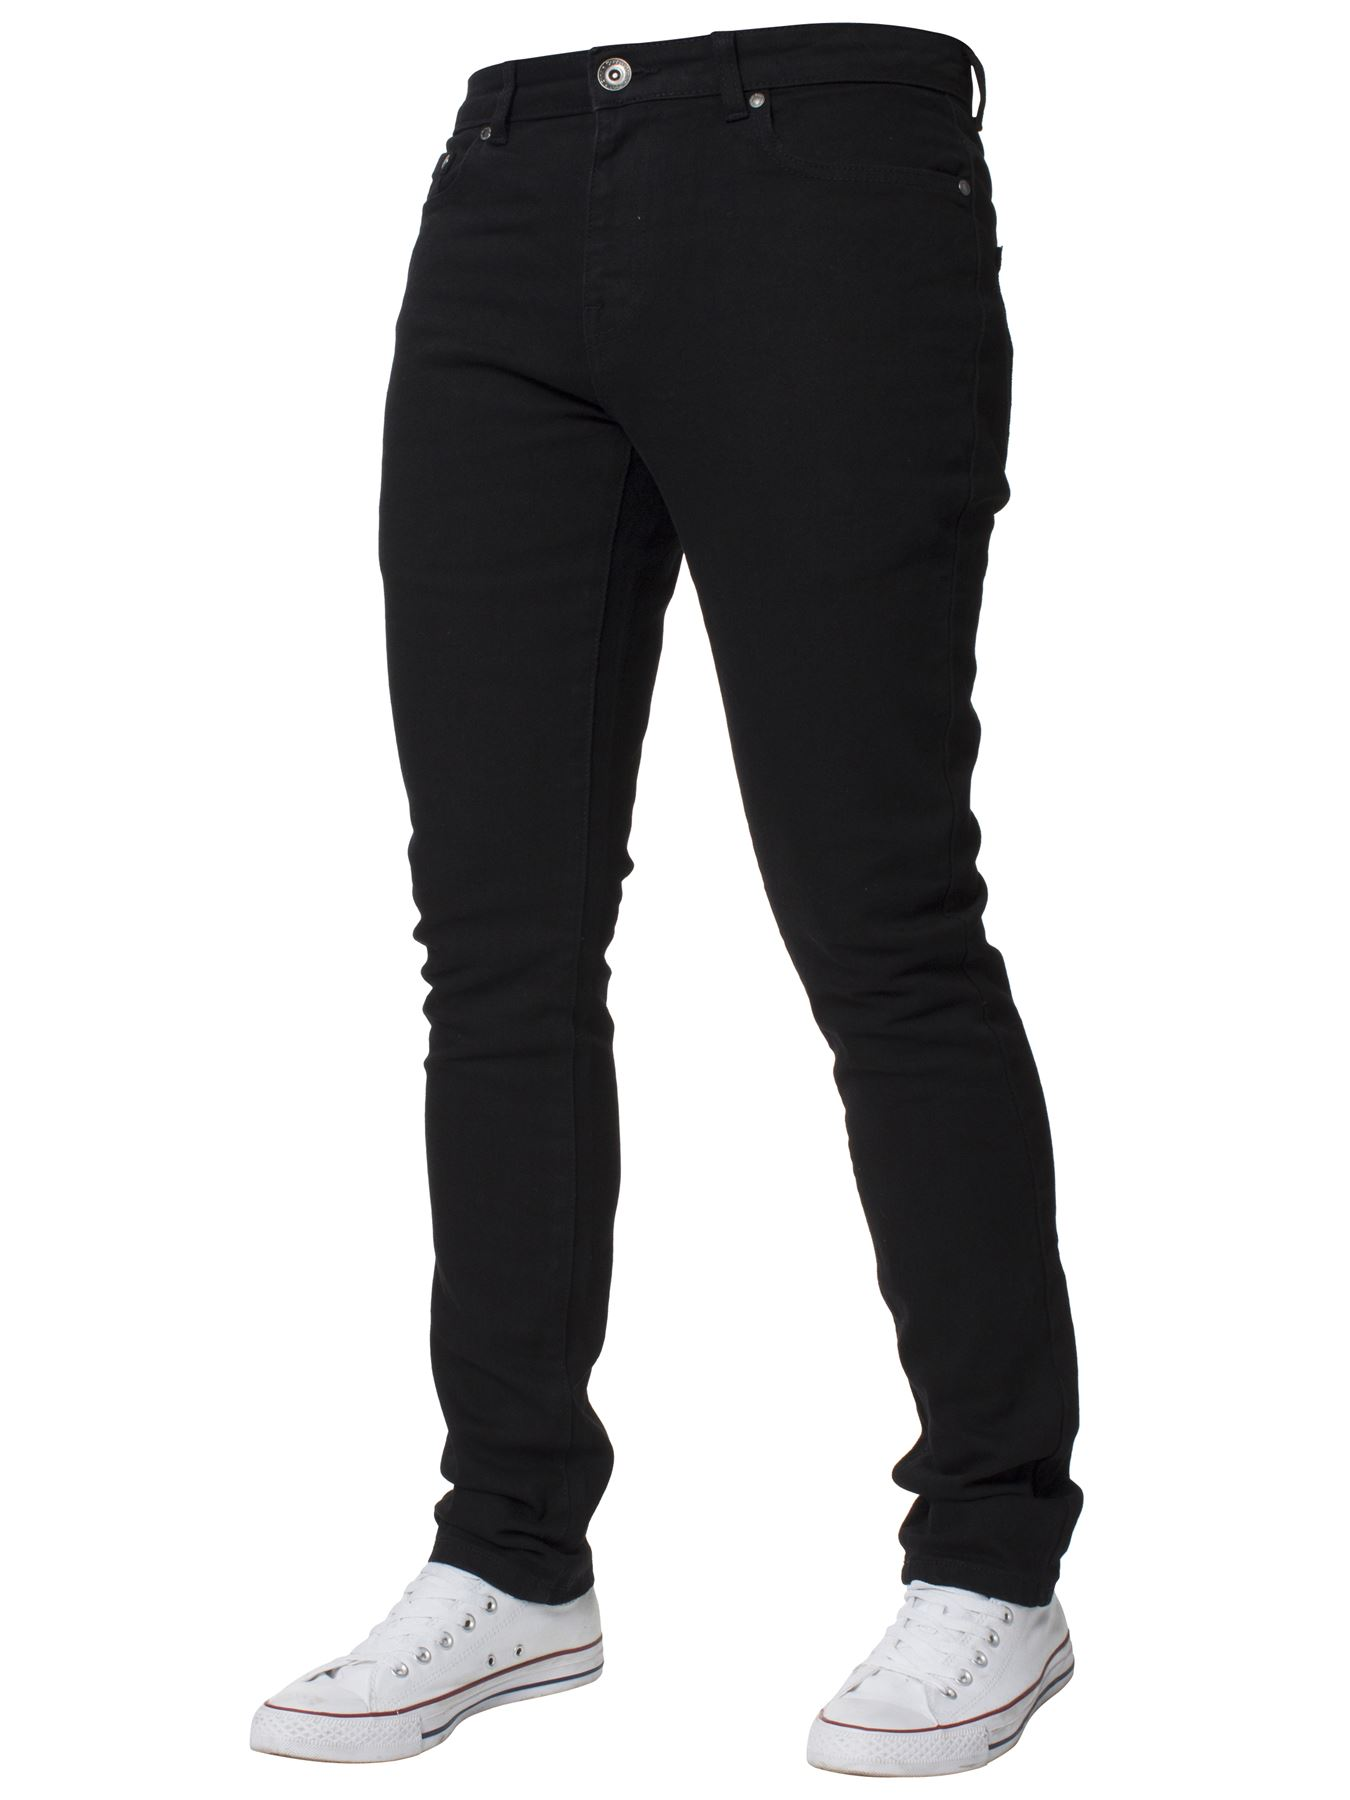 Mens-Skinny-Stretch-Jeans-Slim-Fit-Flex-Denim-Trousers-Pants-King-Sizes-by-Kruze thumbnail 3